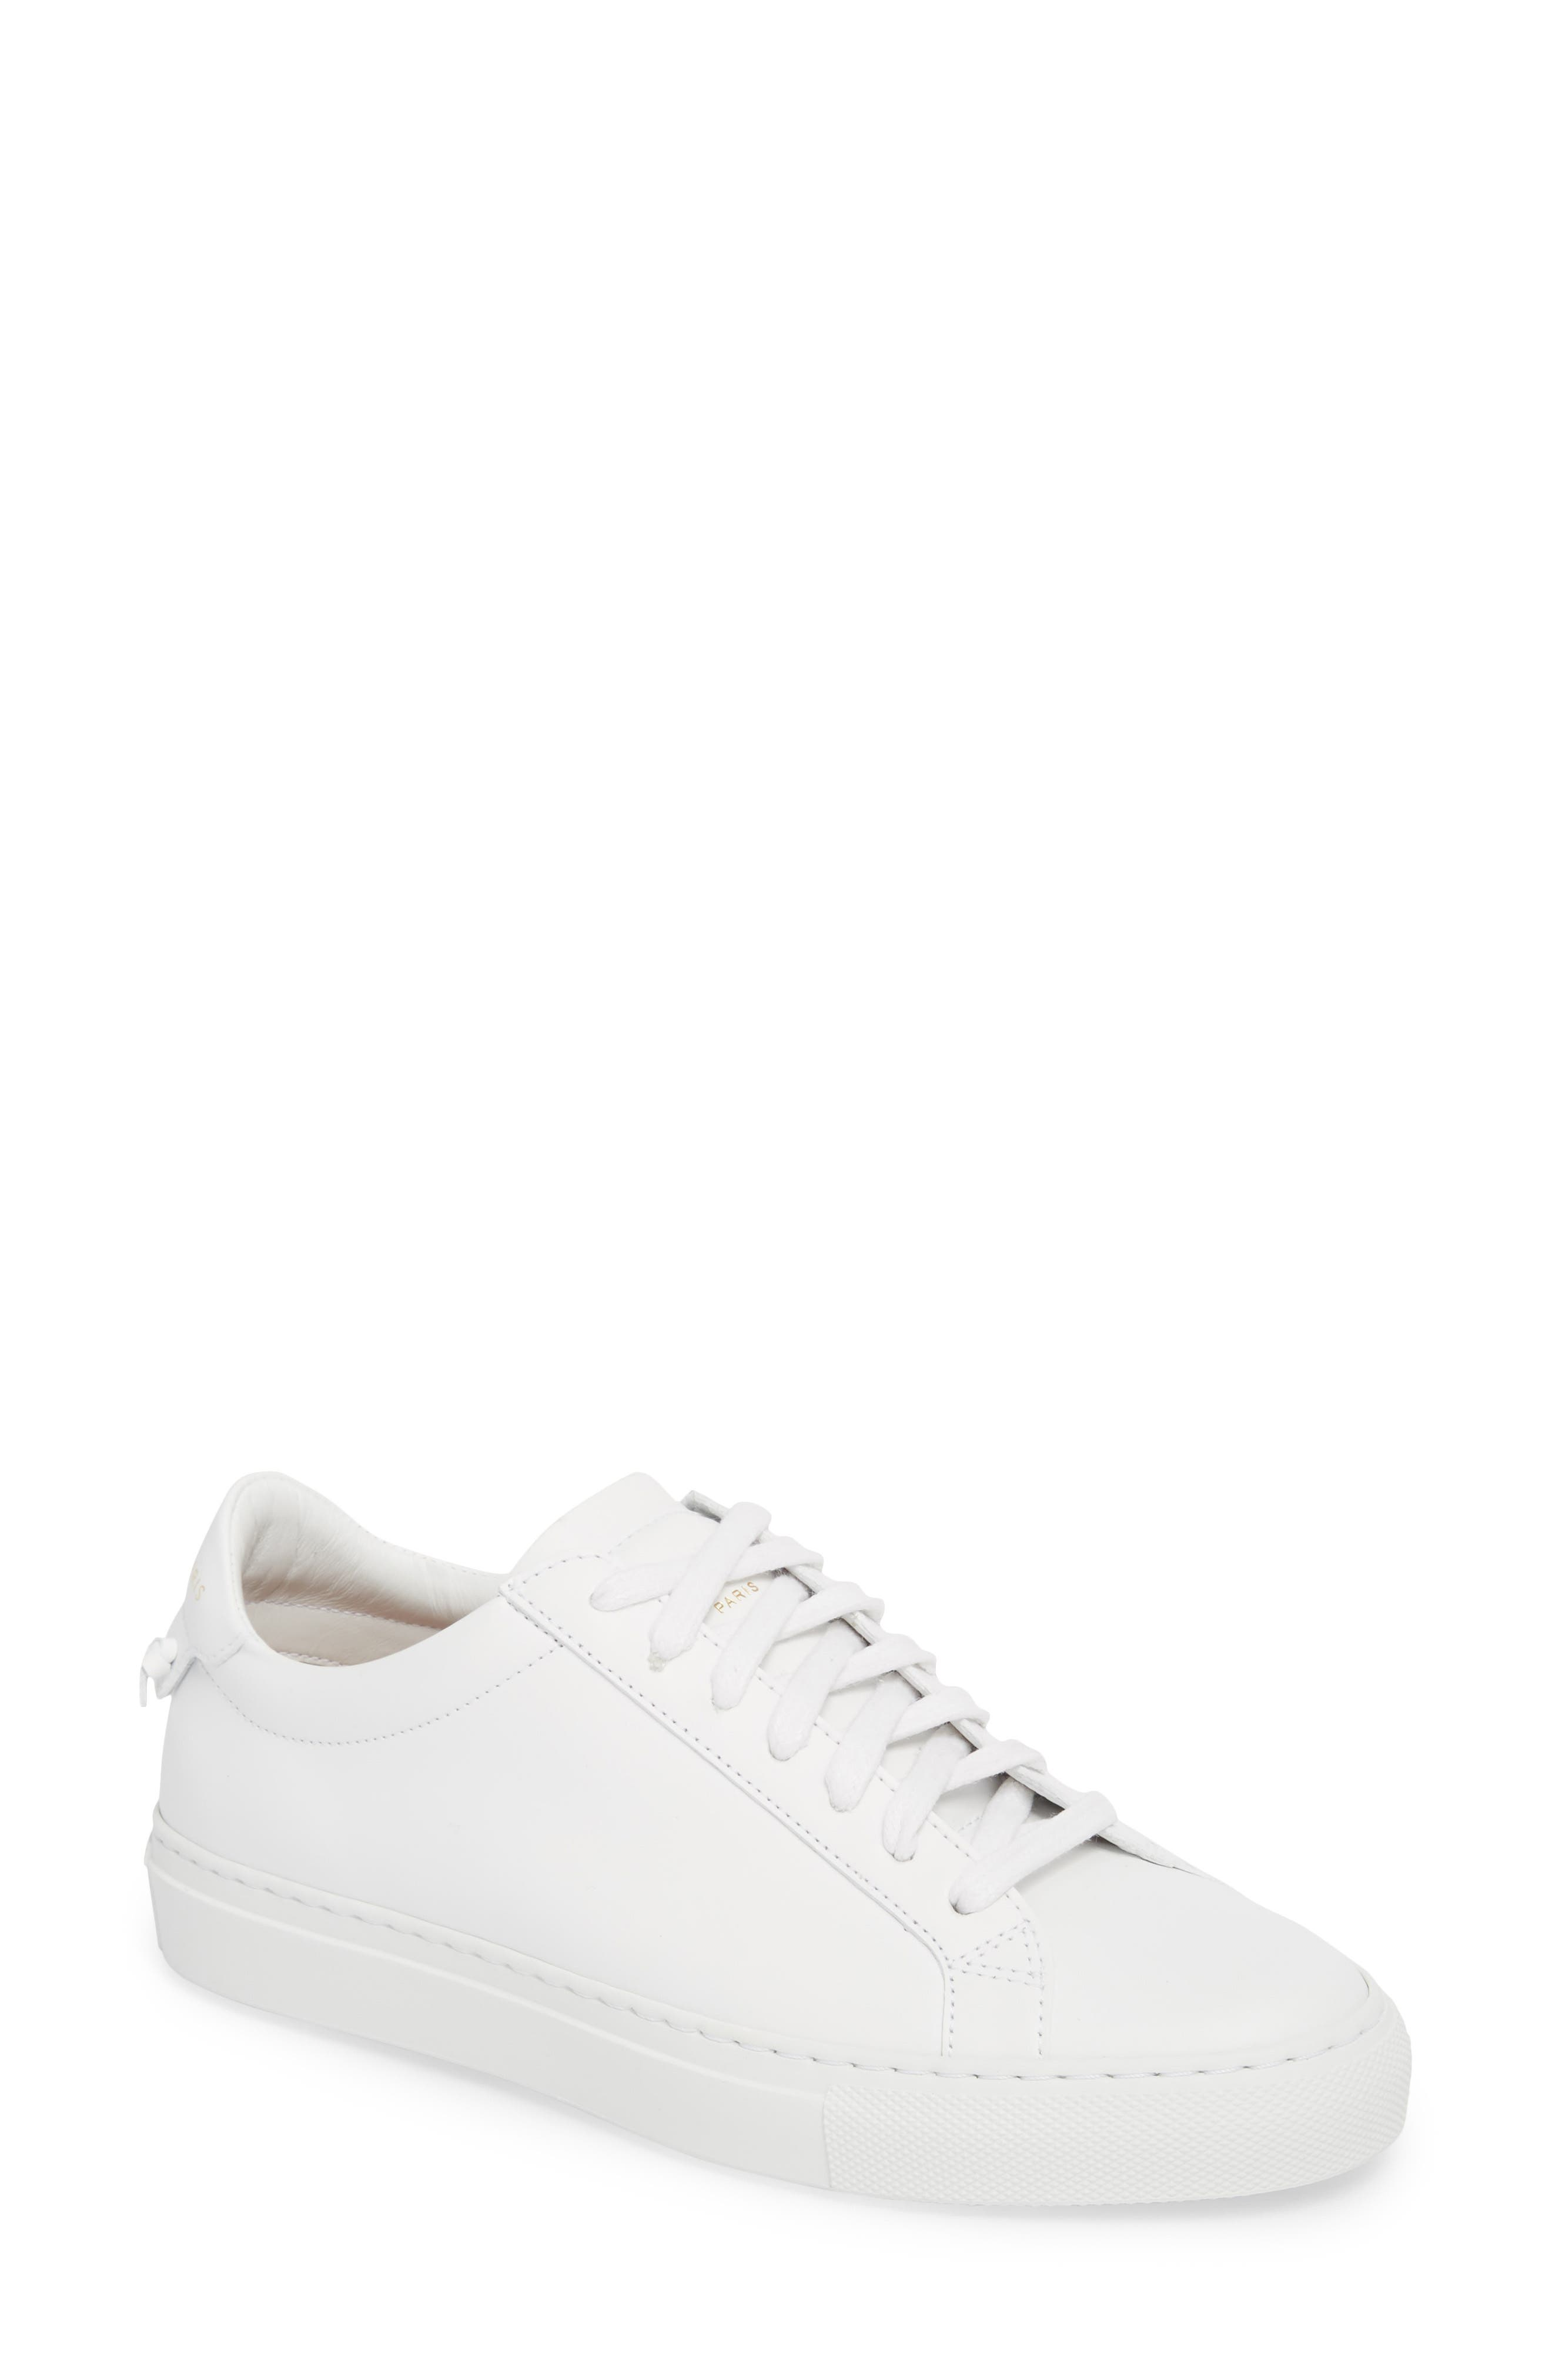 Givenchy Low Top Sneaker